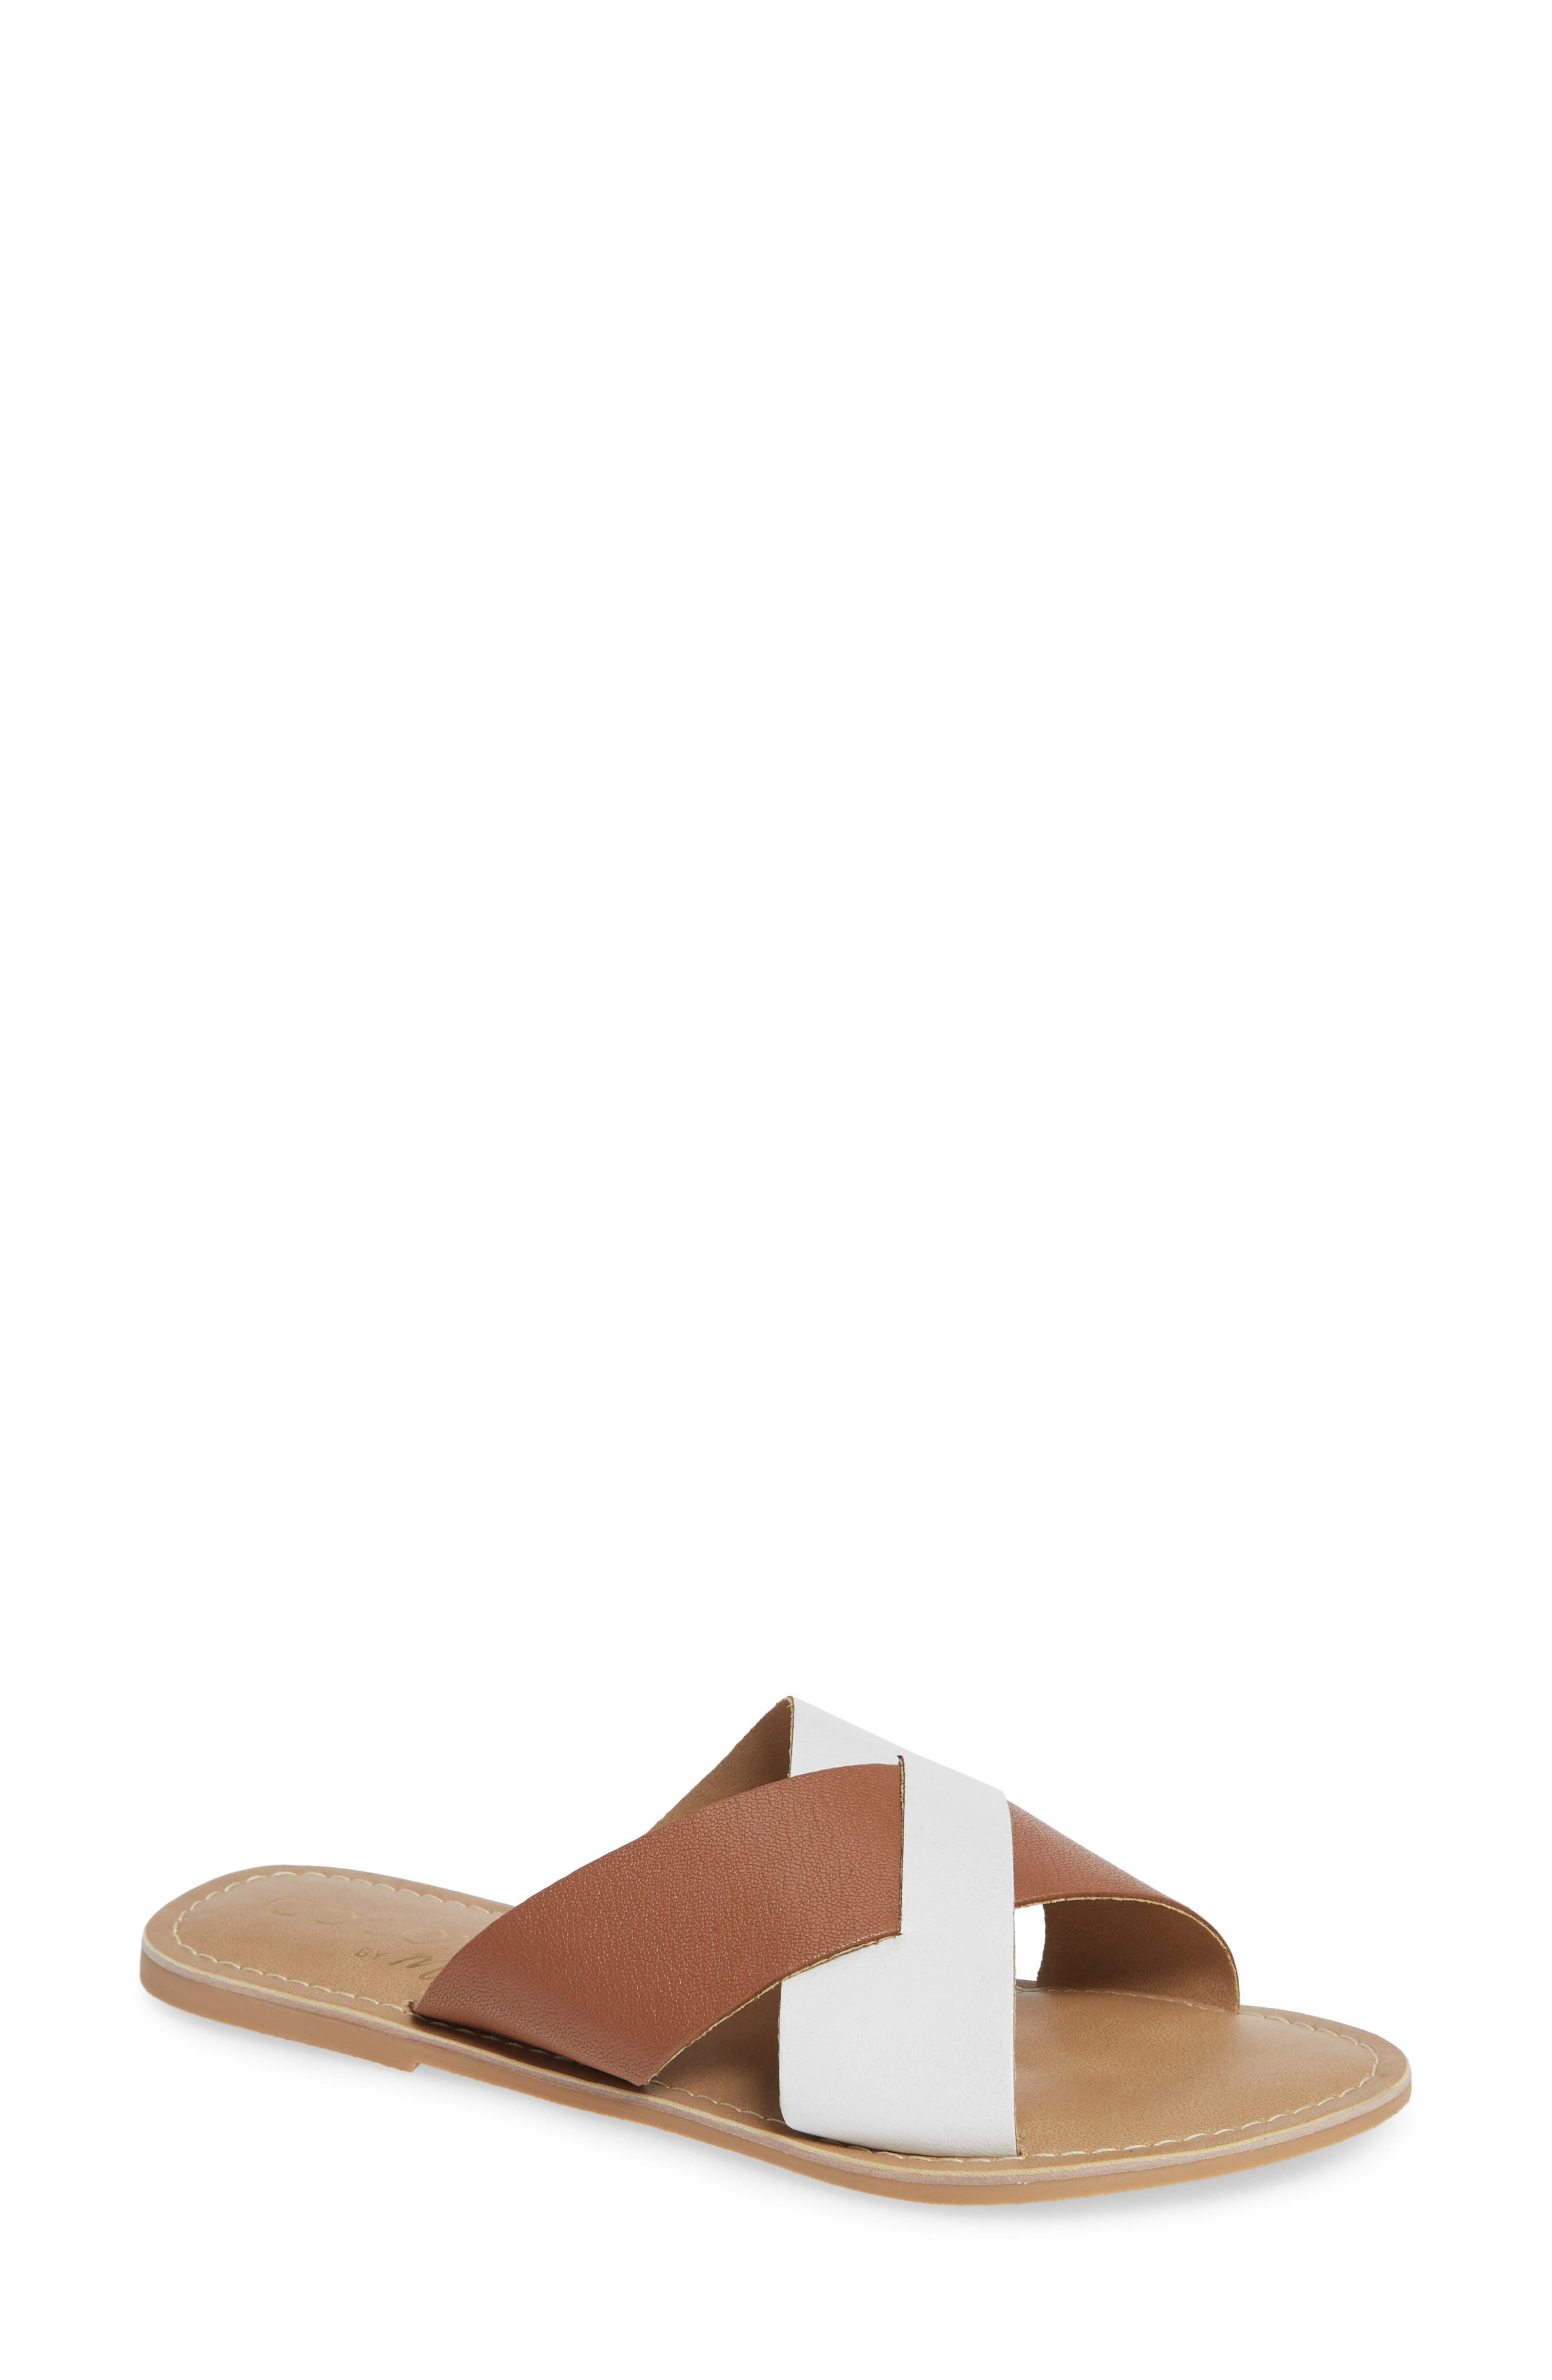 COCONUTS BY MATISSE Wilma Slide Sandal, Main, color, TAN/ WHITE LEATHER